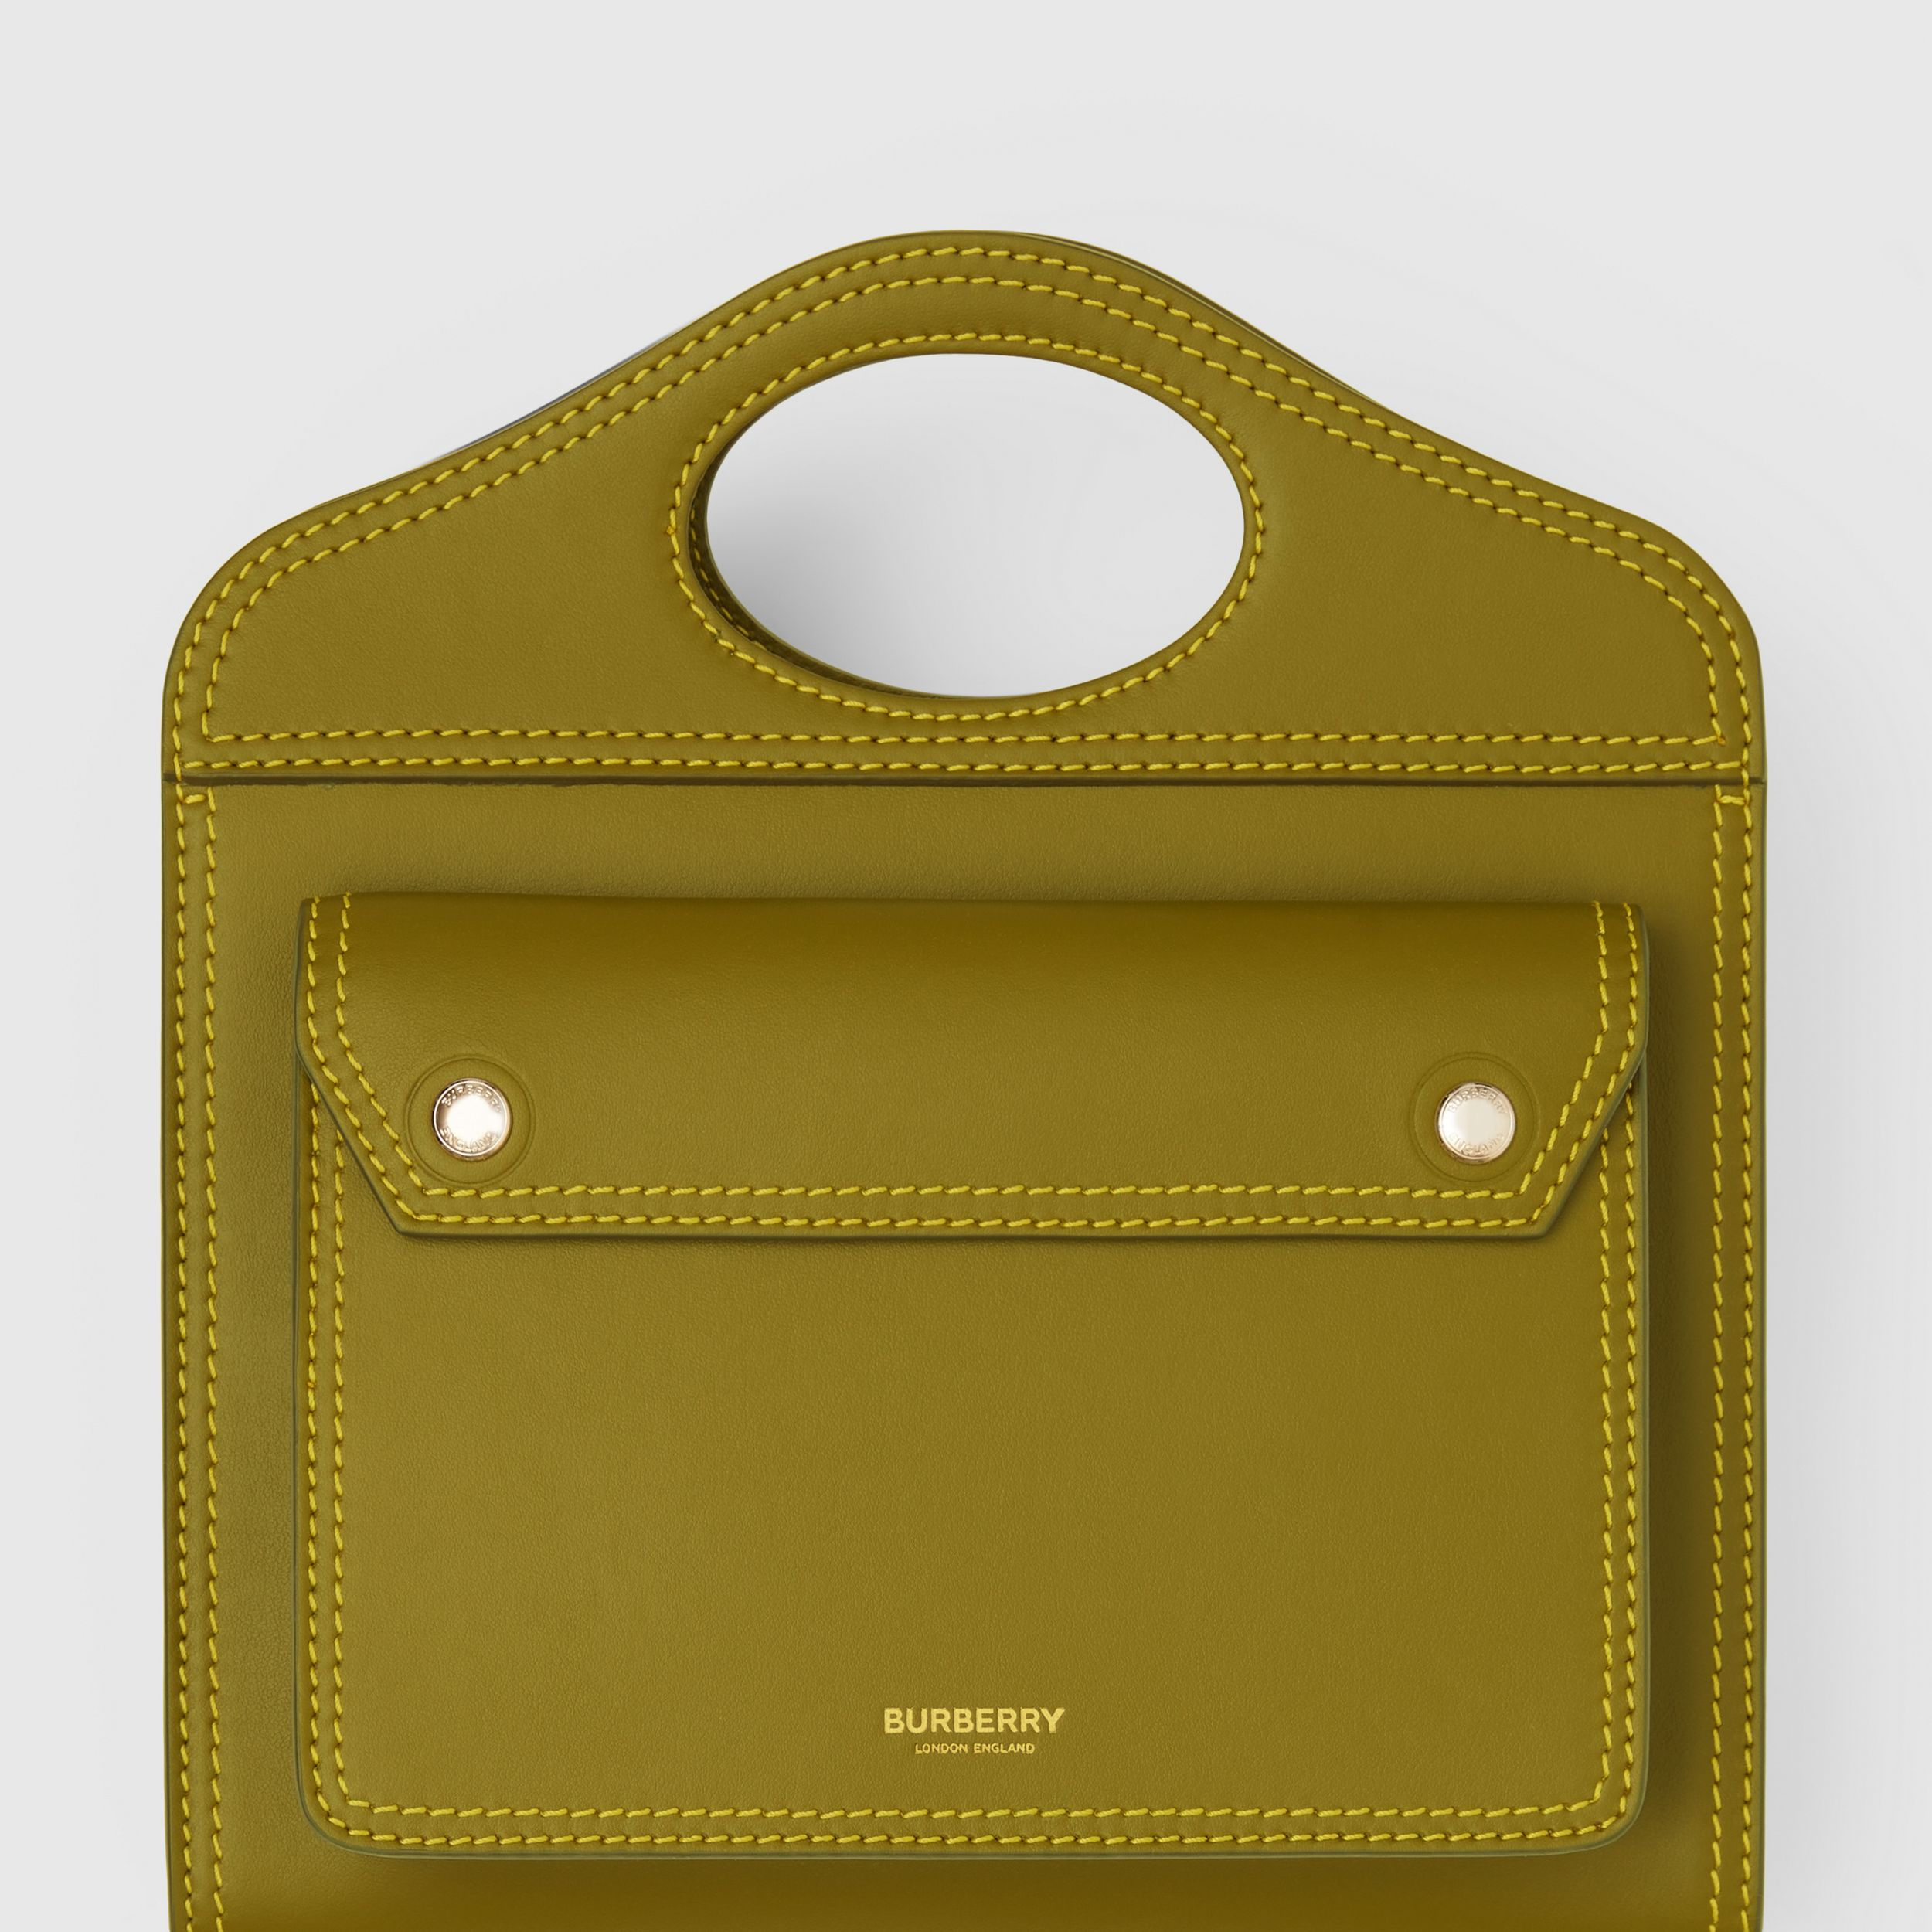 Mini Topstitched Leather Pocket Bag in Juniper Green - Women | Burberry Singapore - 2